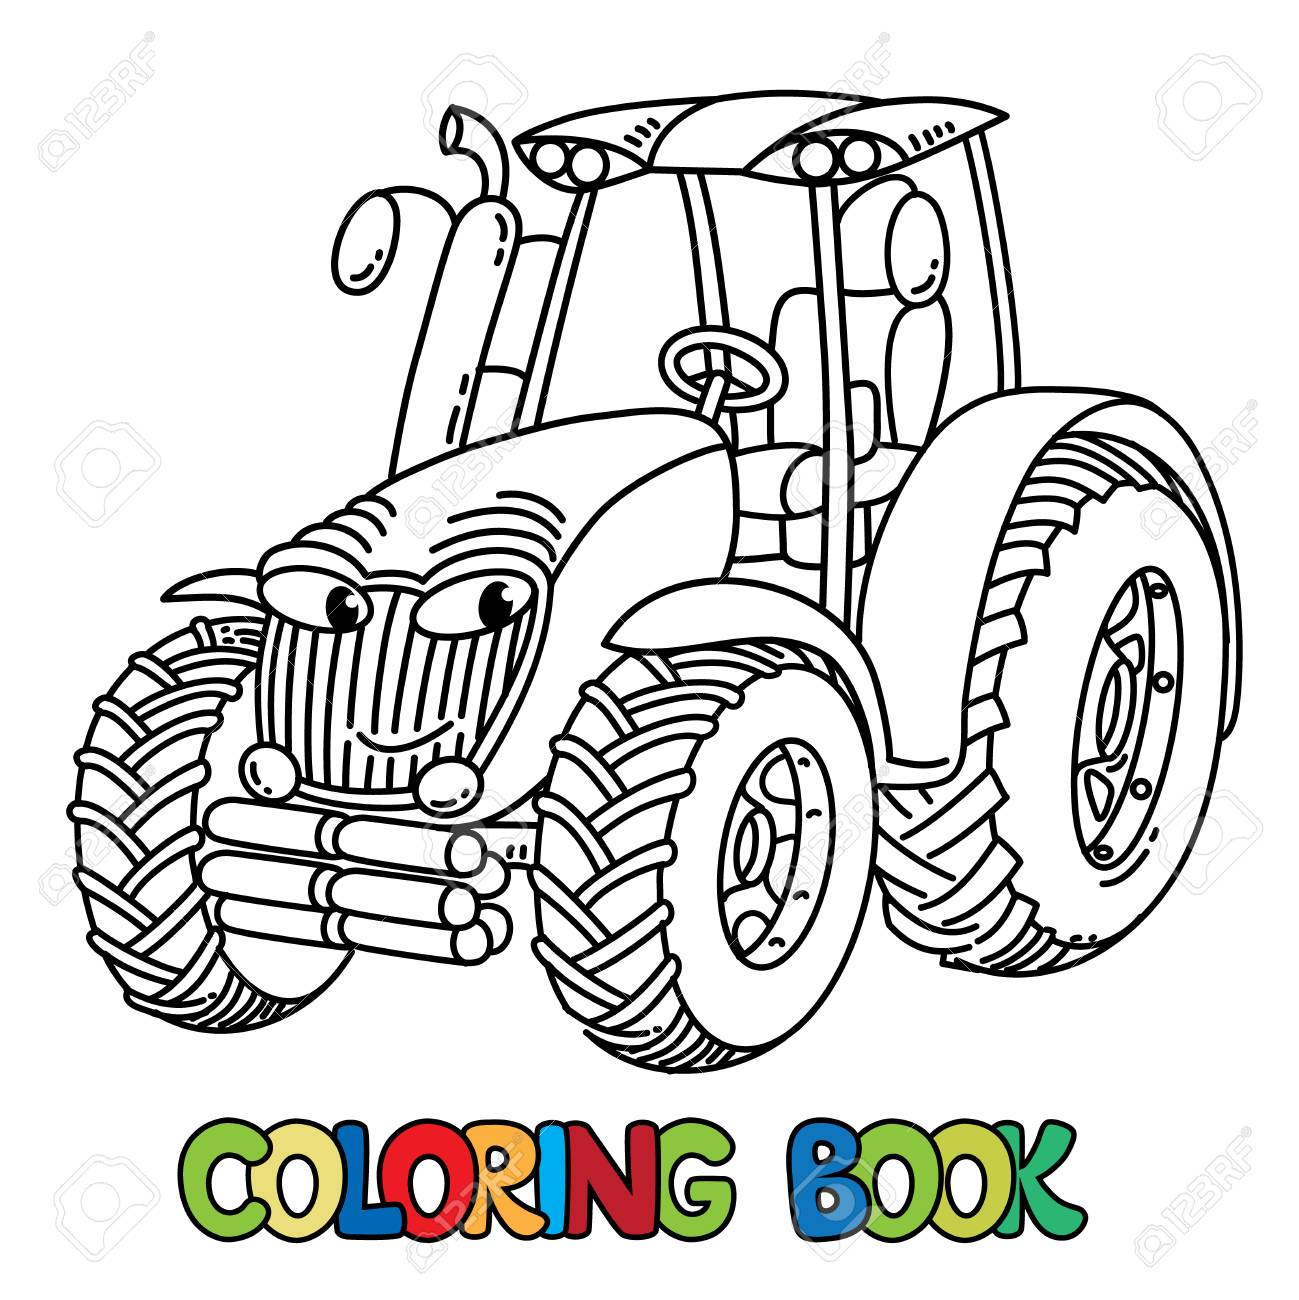 Tractor Coloring Book For Kids Small Funny Vector Cute Car With